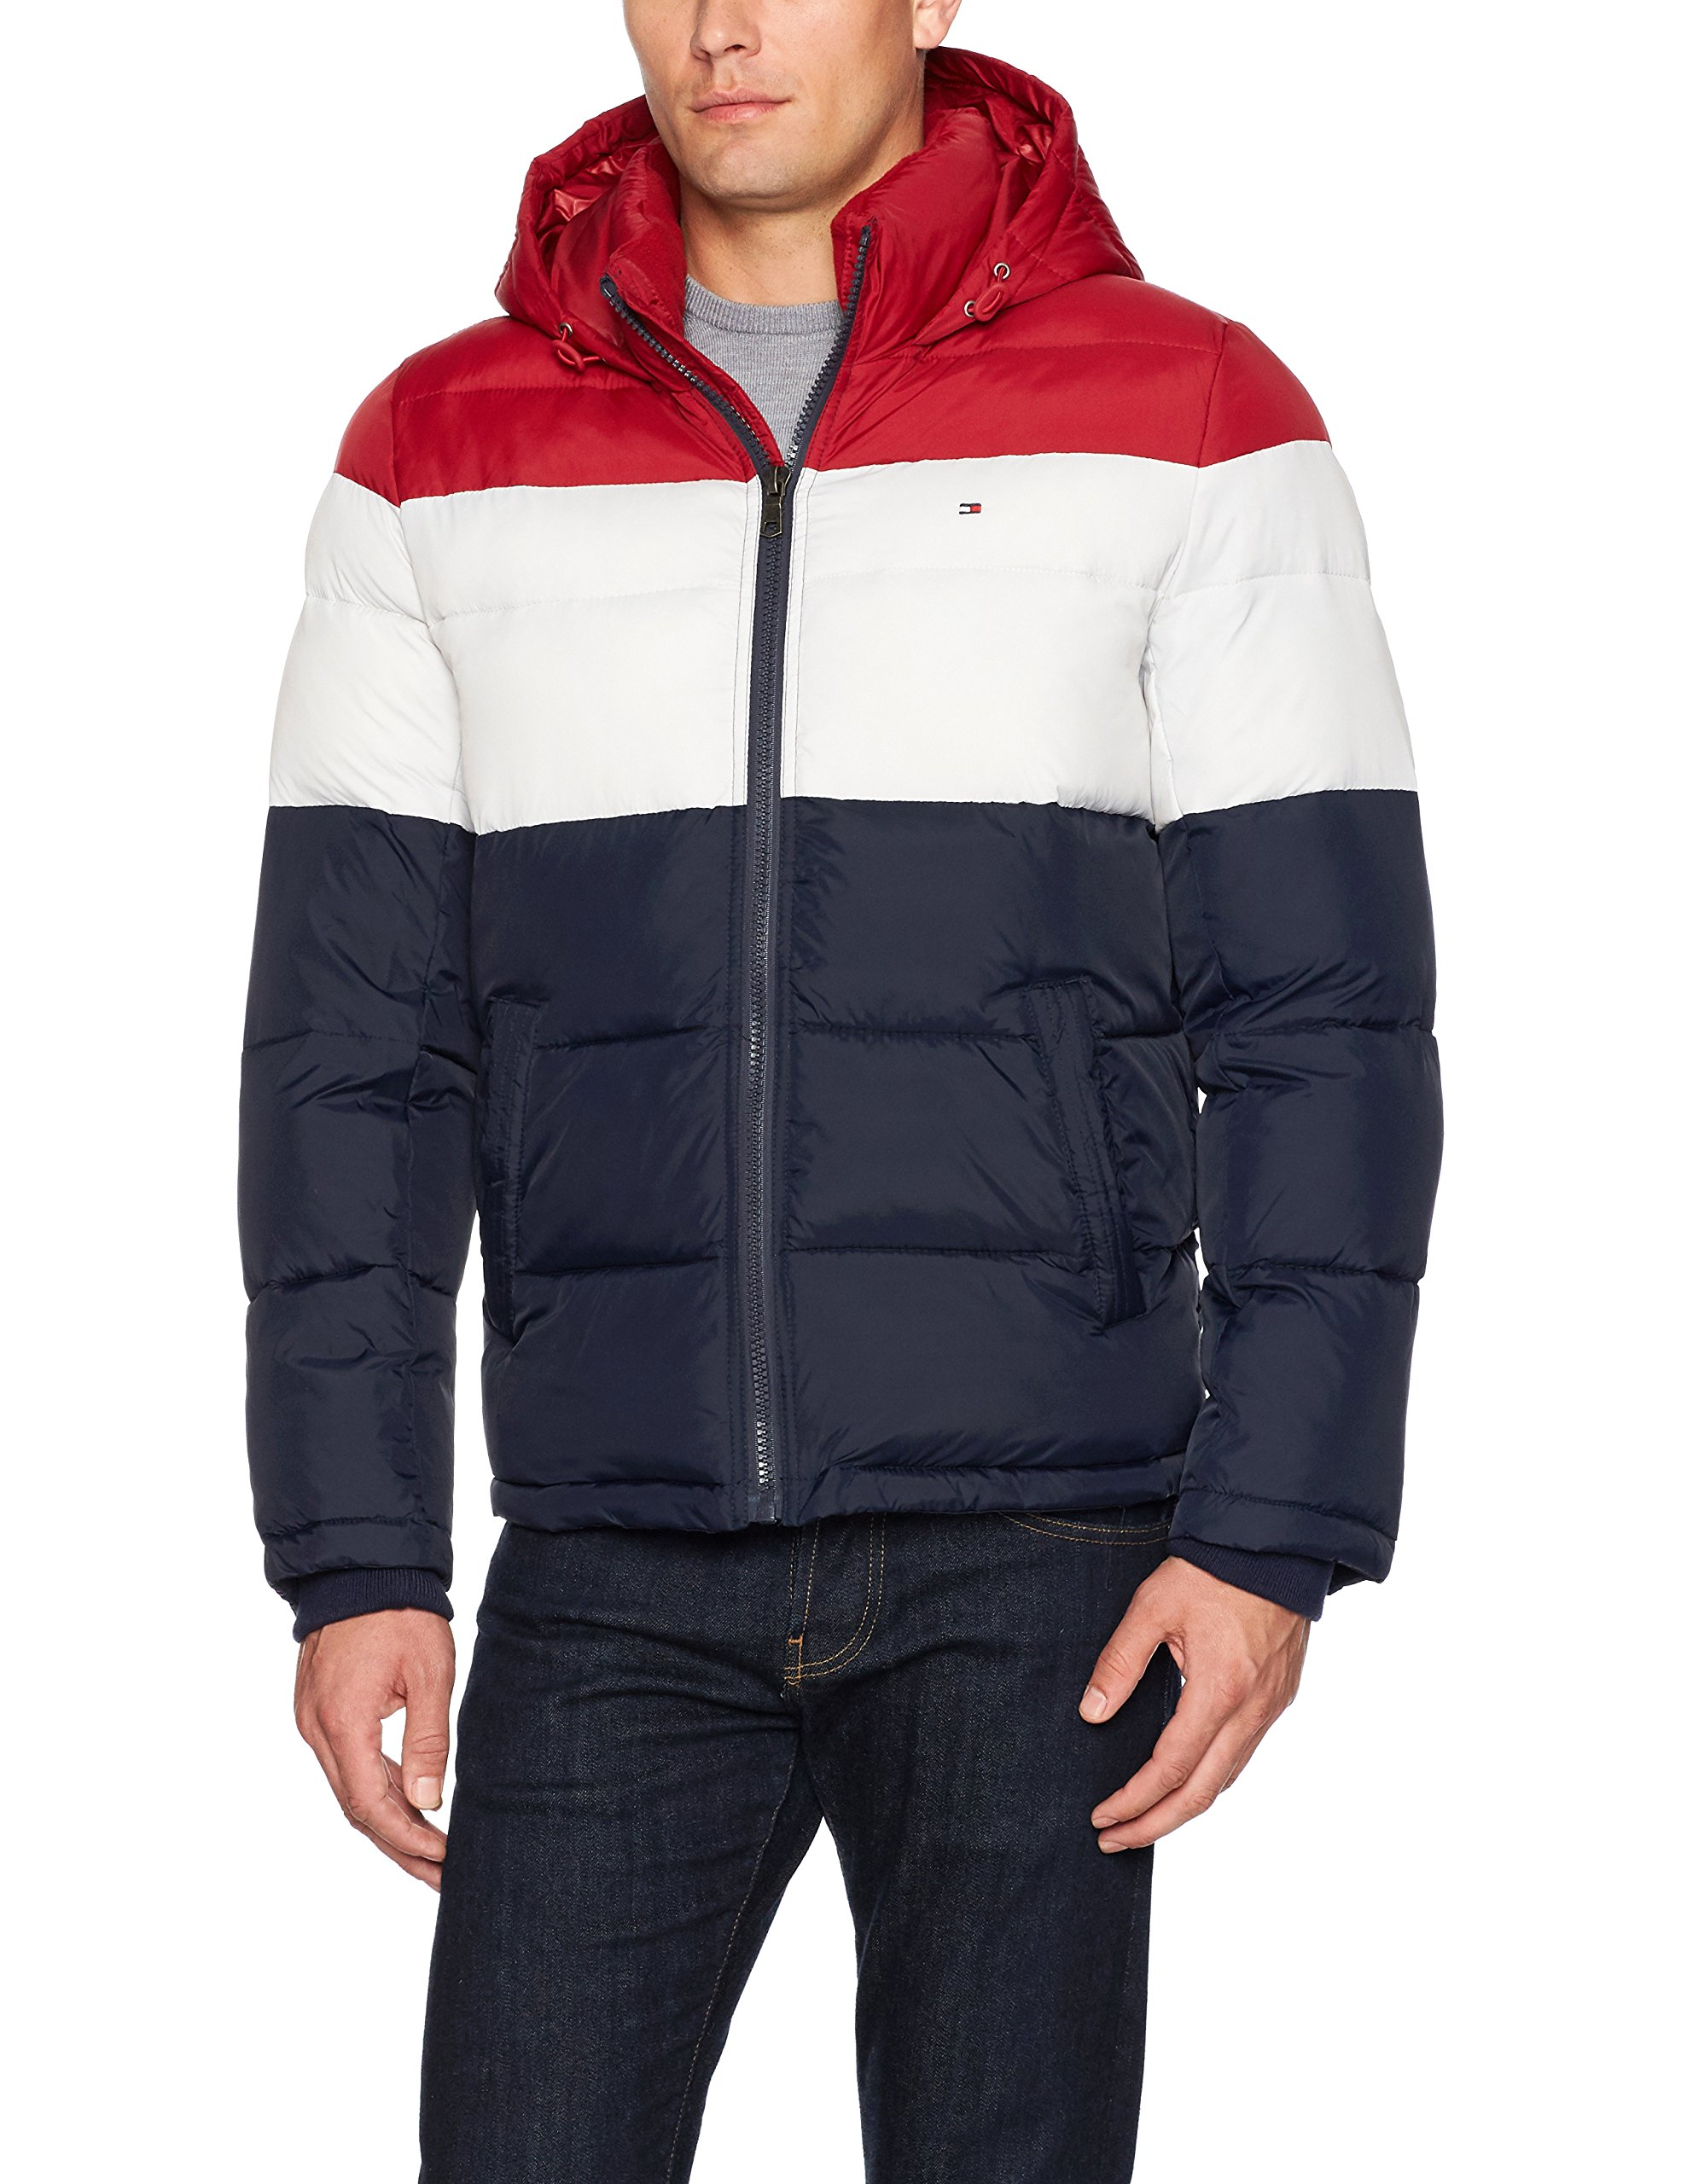 Tommy Hilfiger Men's Classic Hooded Puffer Jacket, Red/White/Midnight, XX-Large by Tommy Hilfiger